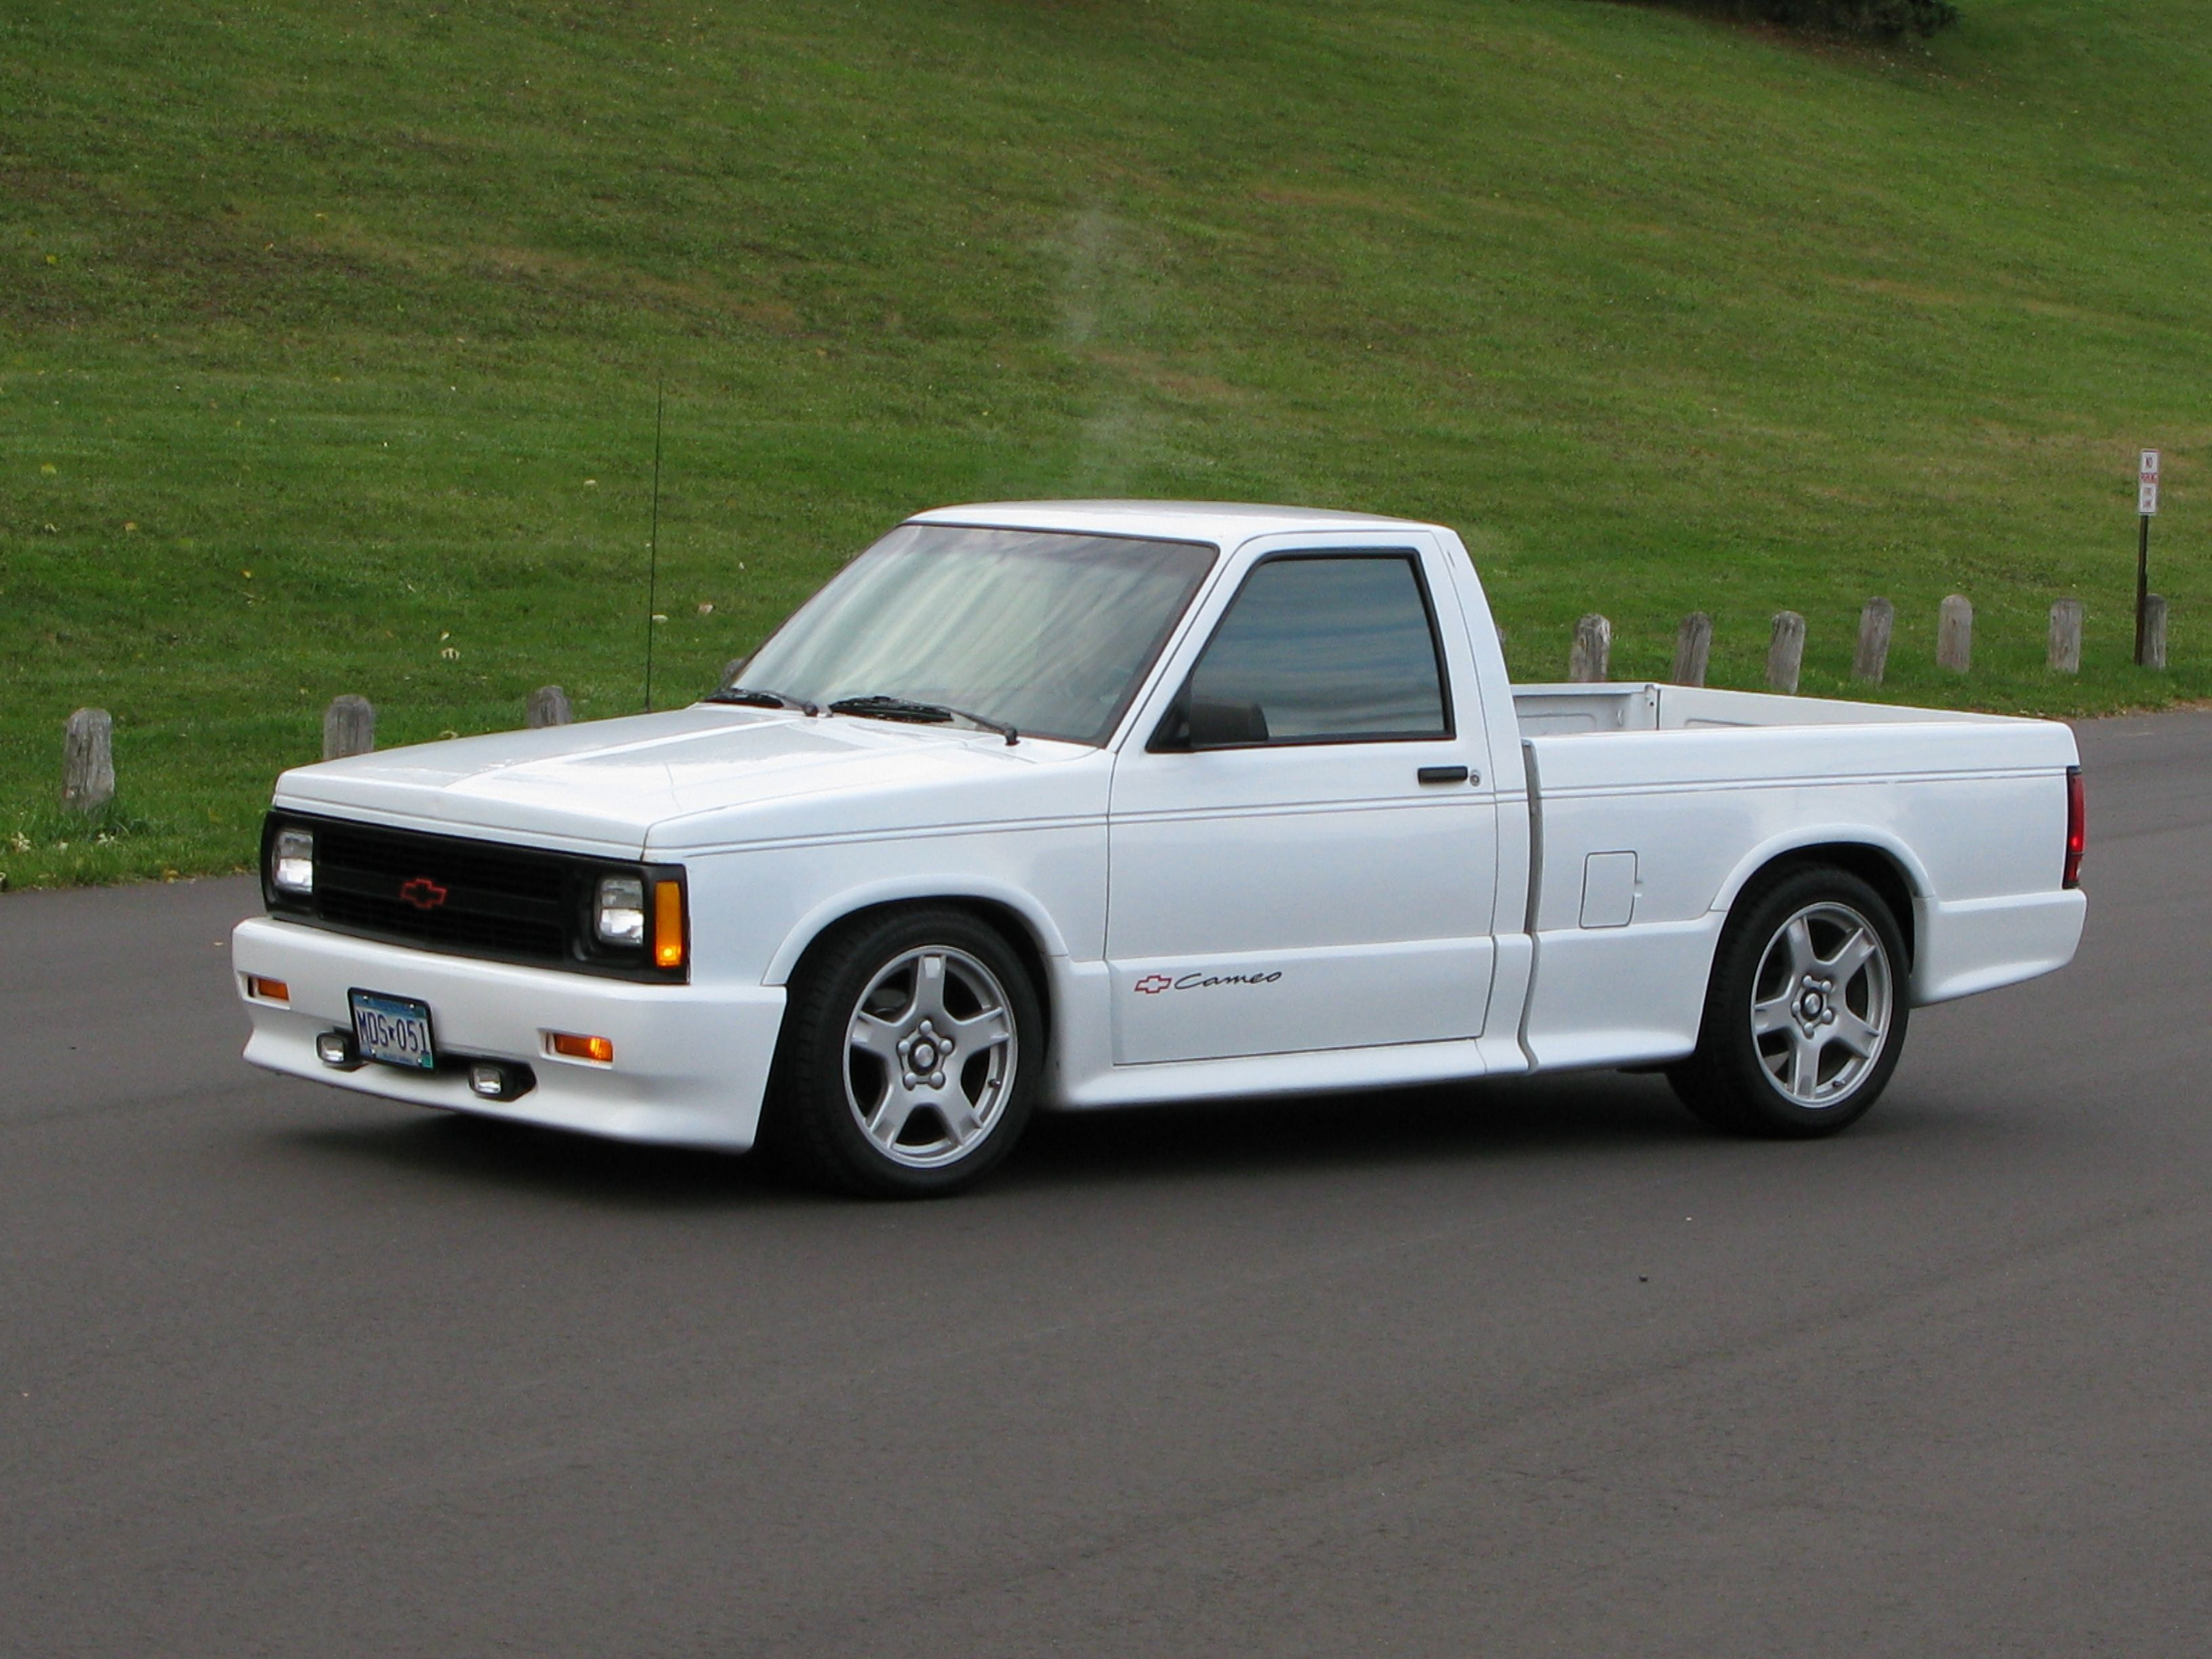 1991 S10 Cameo For Sale Classic Pickup Trucks Chevy S10 S10 Truck